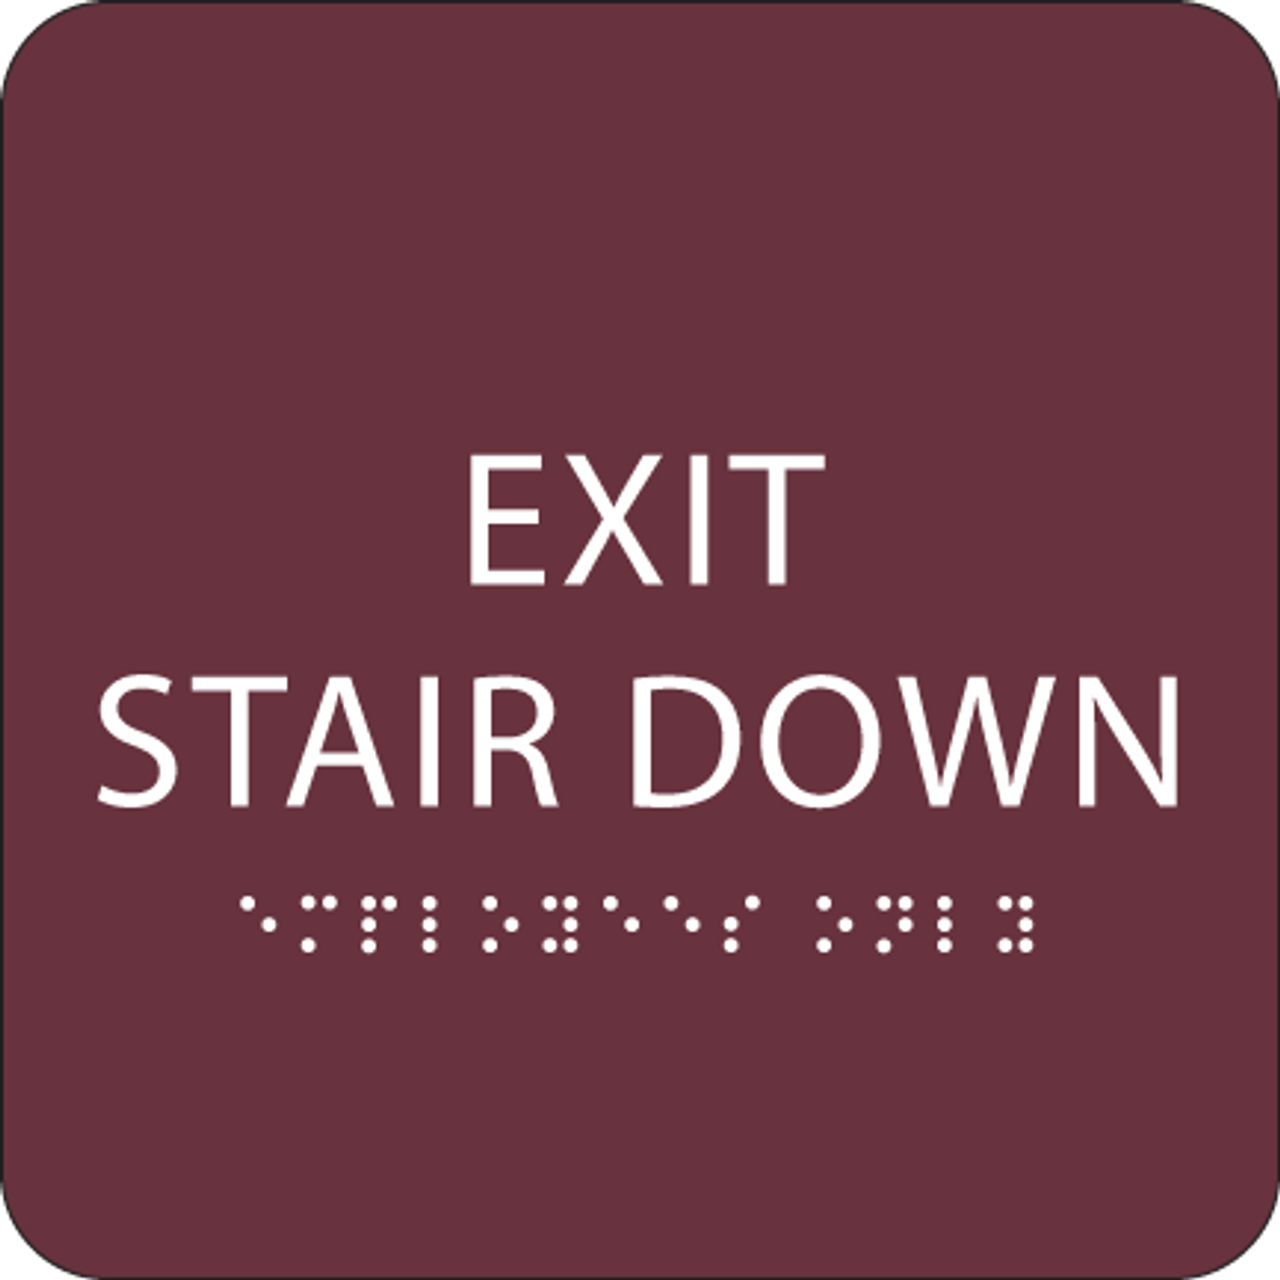 Burgundy Exit Stair Down ADA Sign